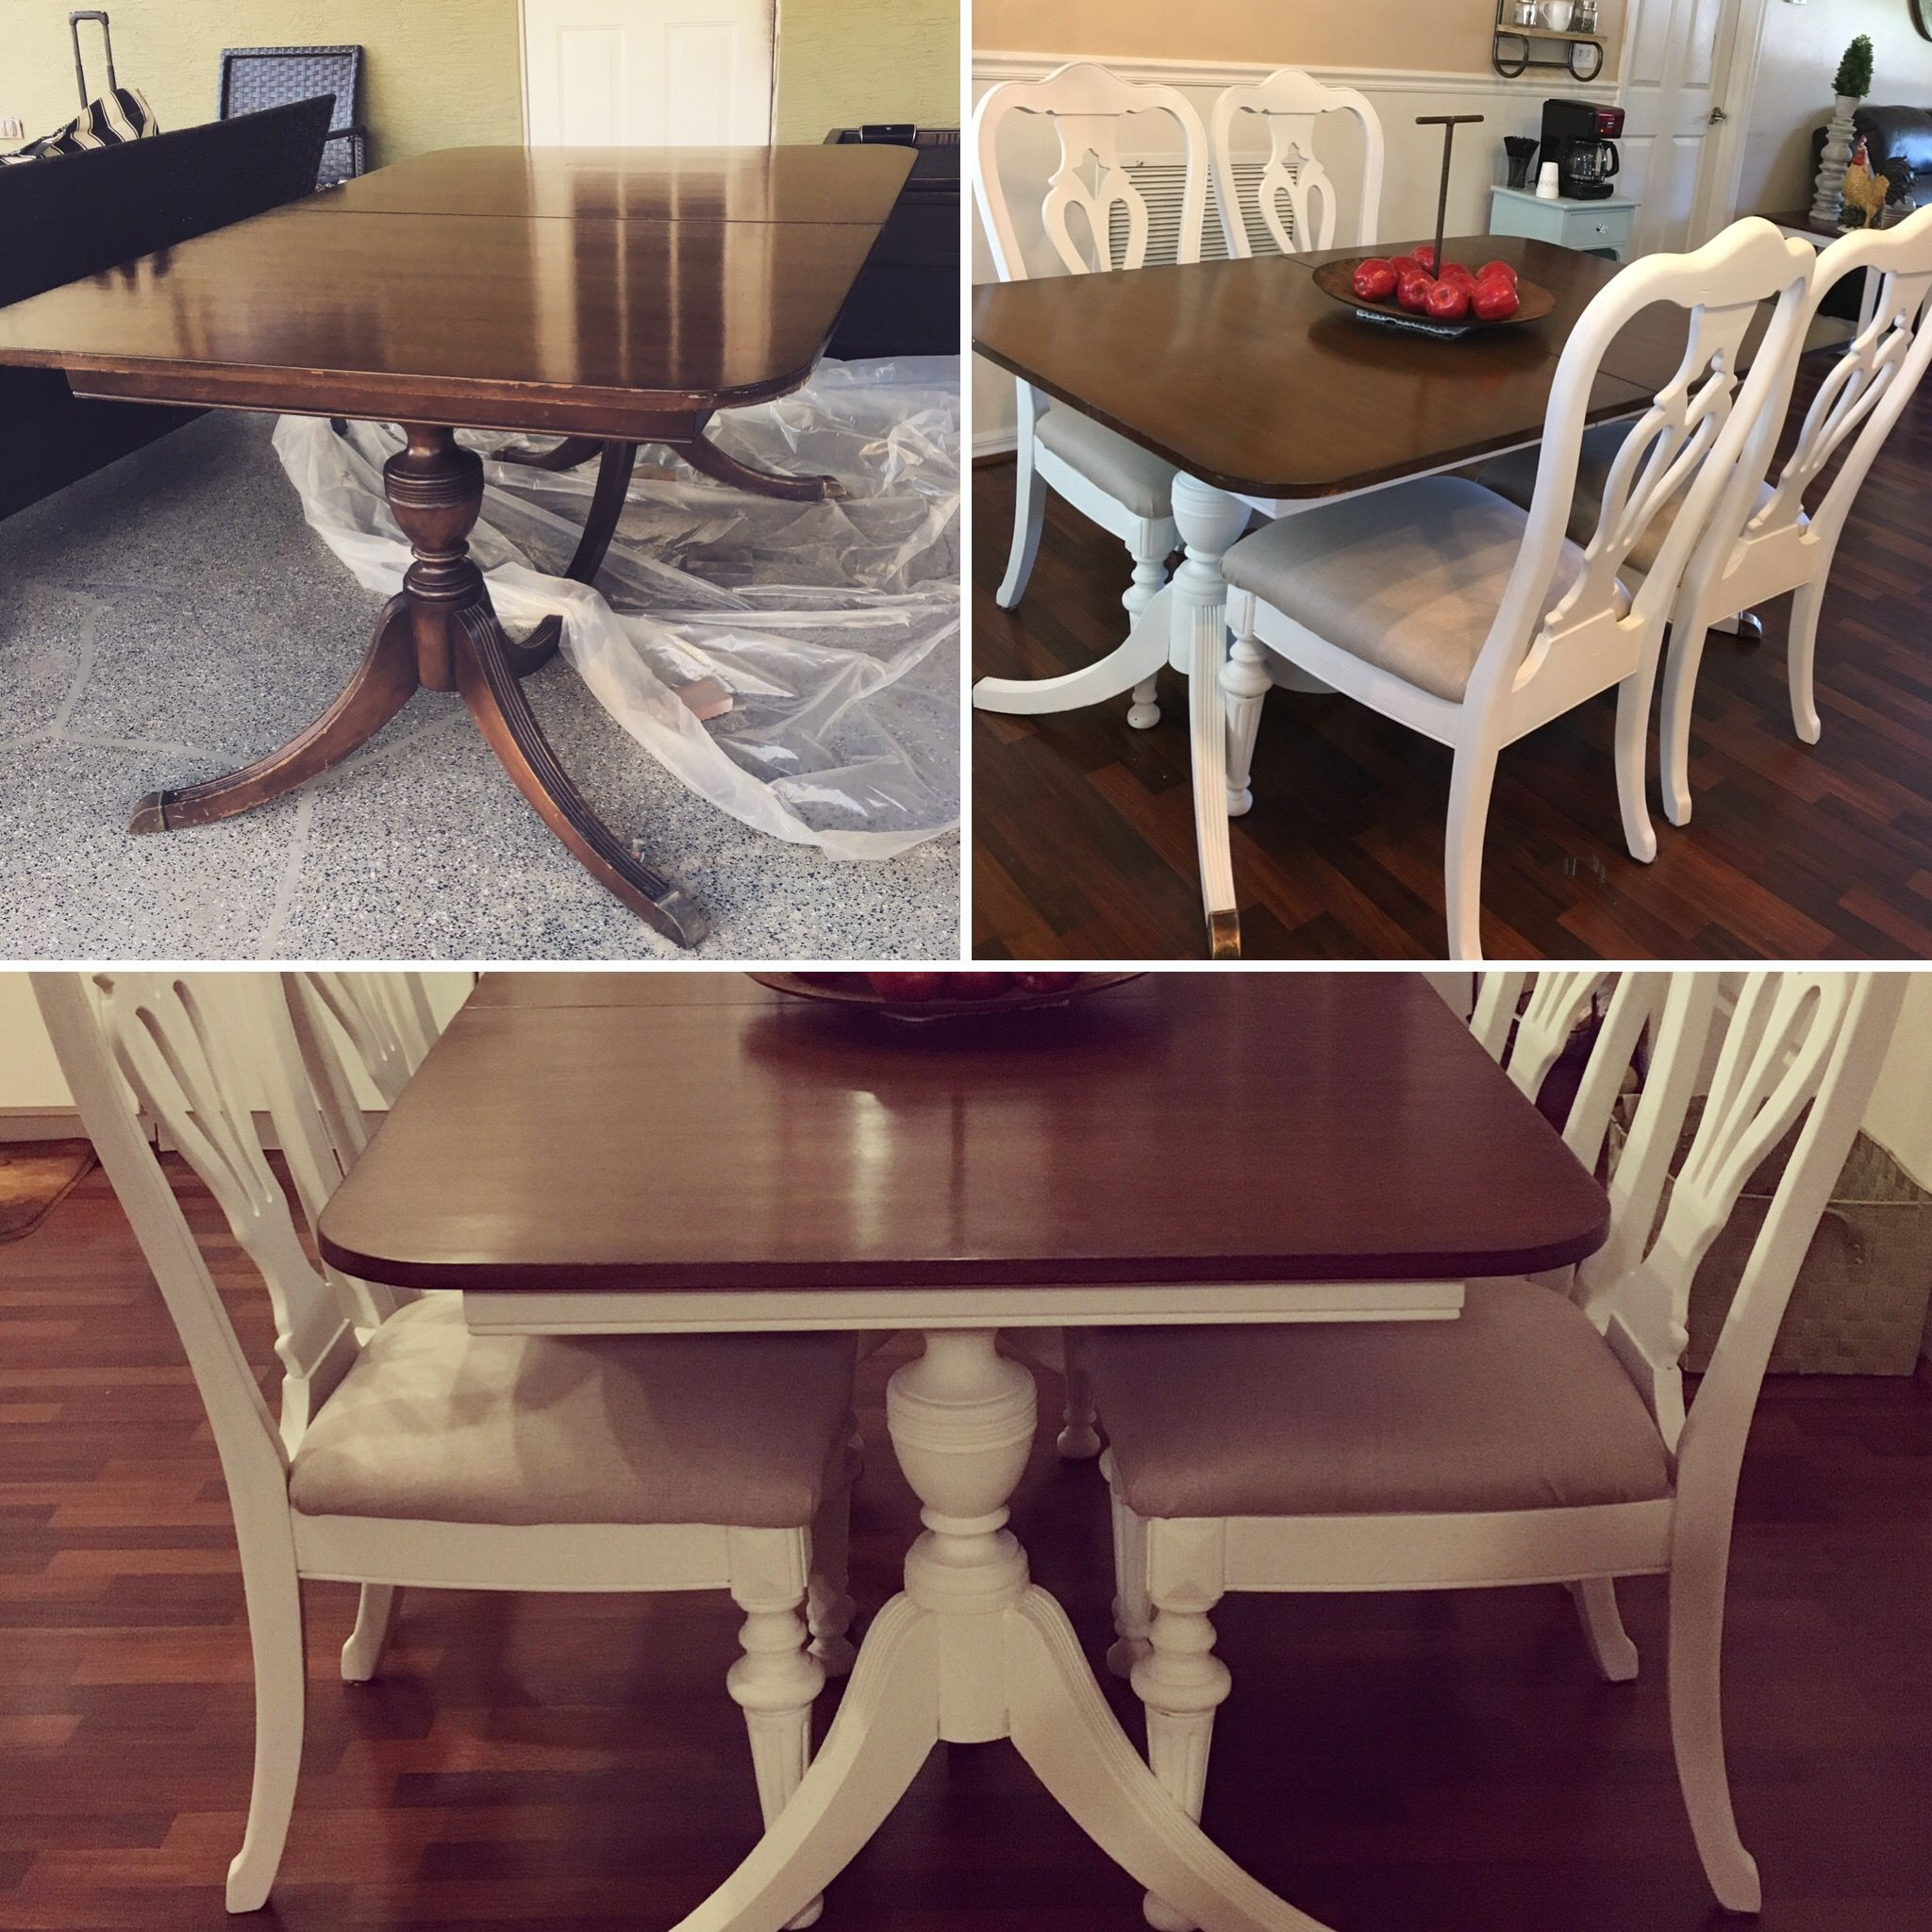 Duncan Phyfe Table Makeover White Chalk Paint On Base And Repainted Chairs From A Previous To Match